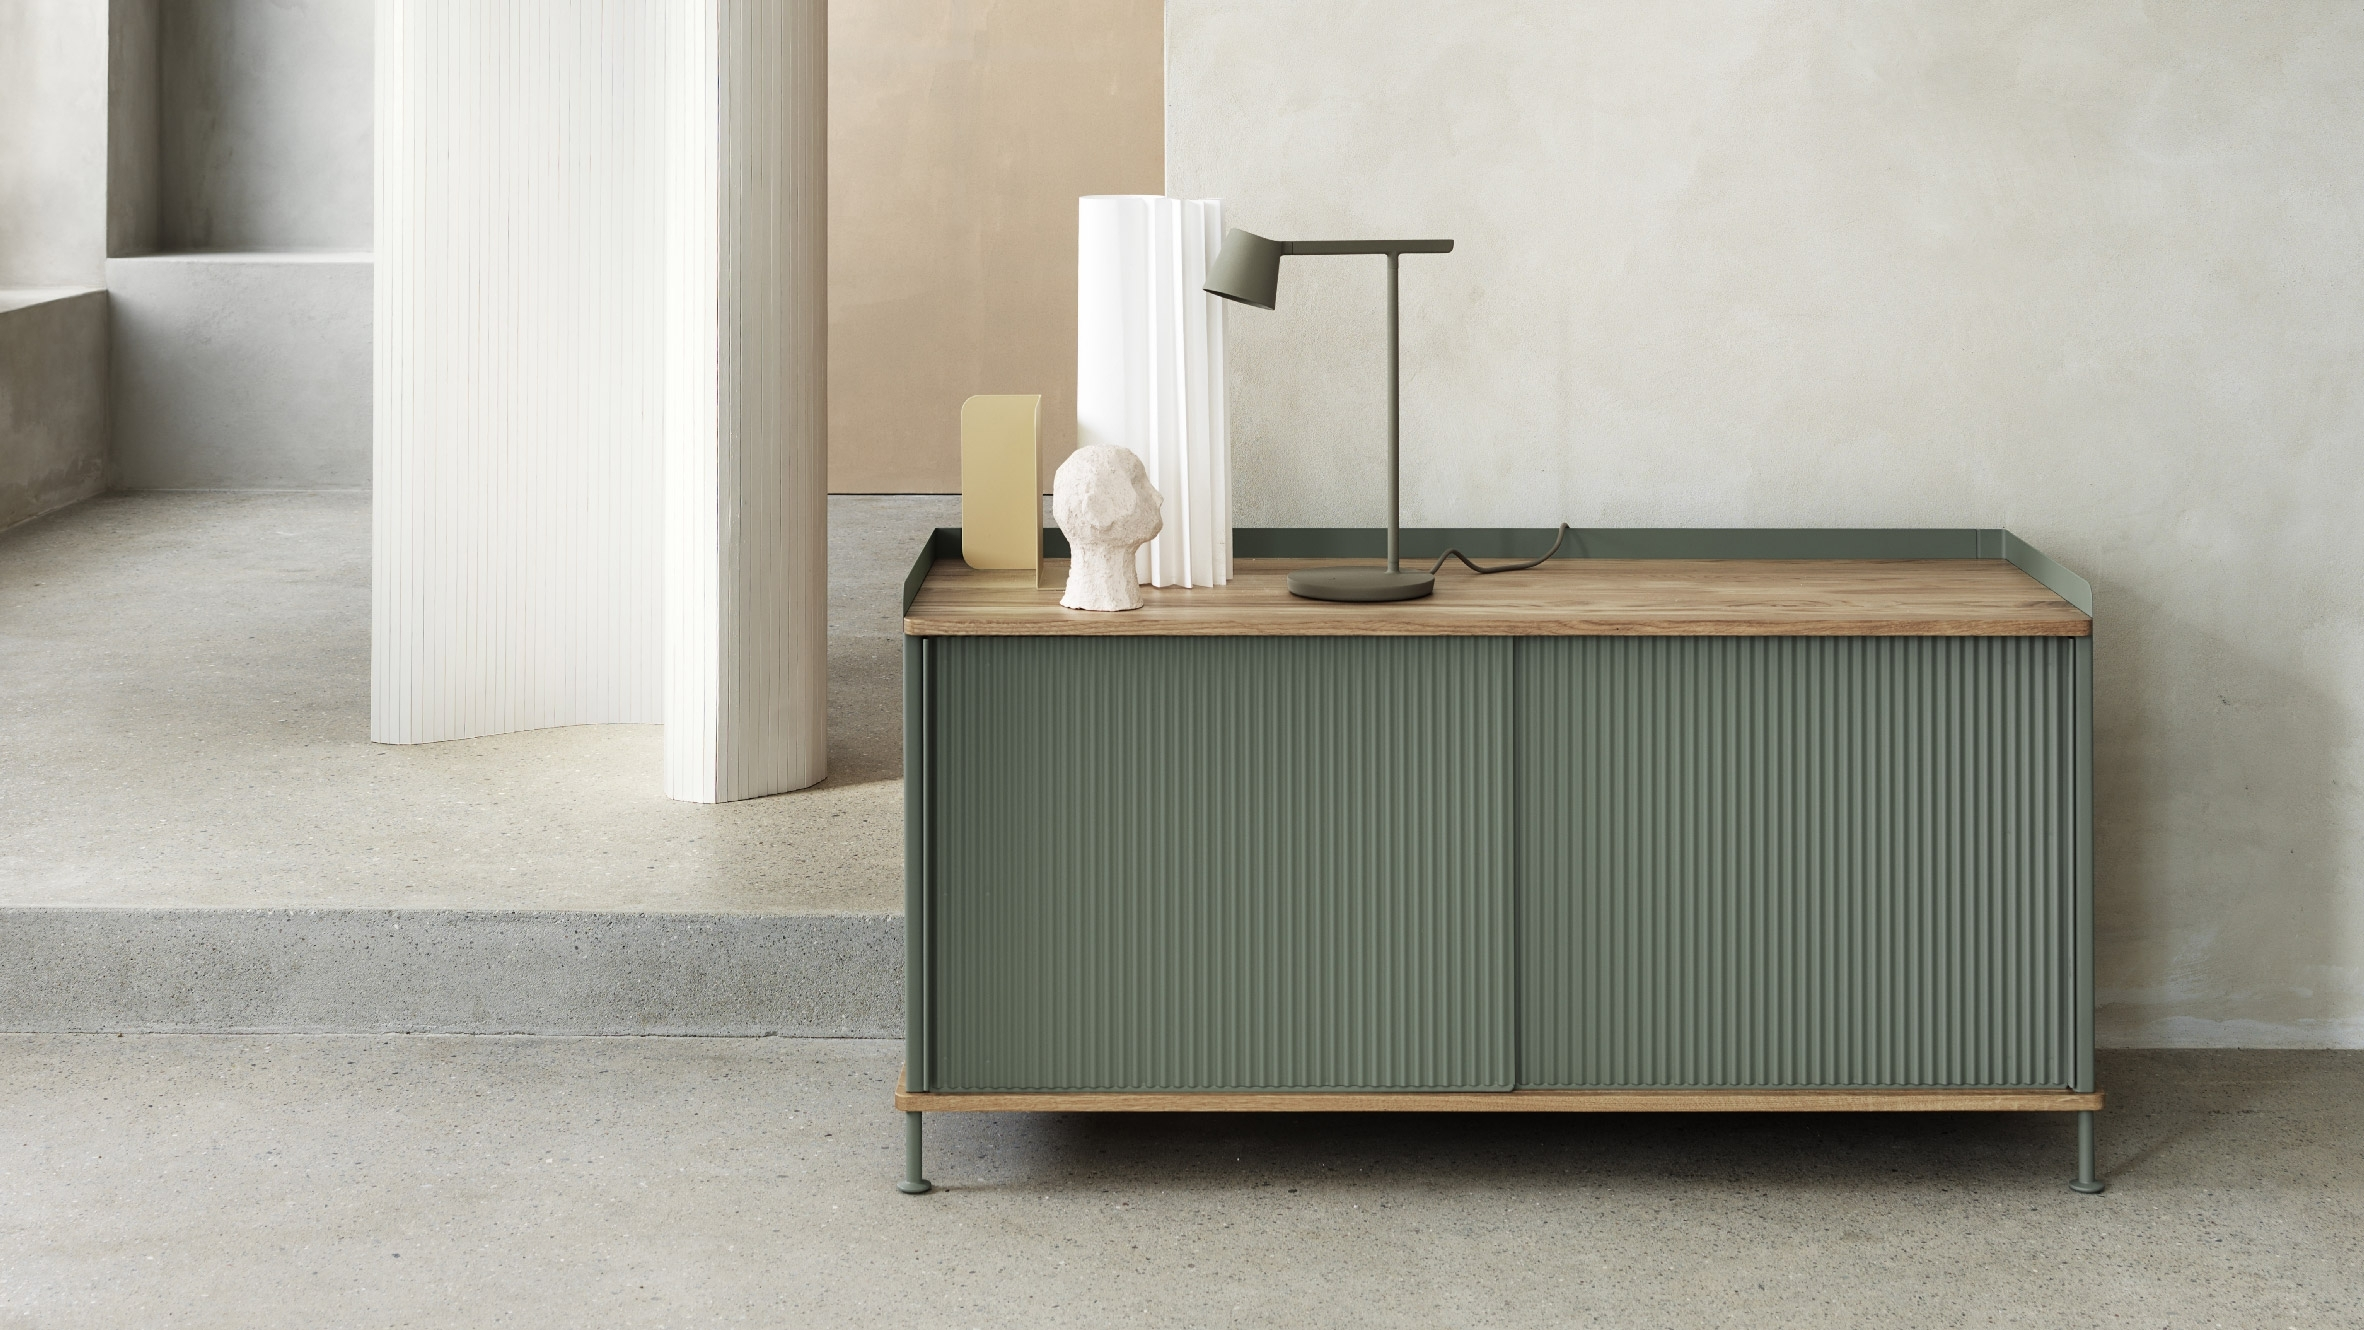 Thomas Bentzen Designs Factory-Inspired Sideboard For Muuto in Jigsaw Refinement Sideboards (Image 29 of 30)